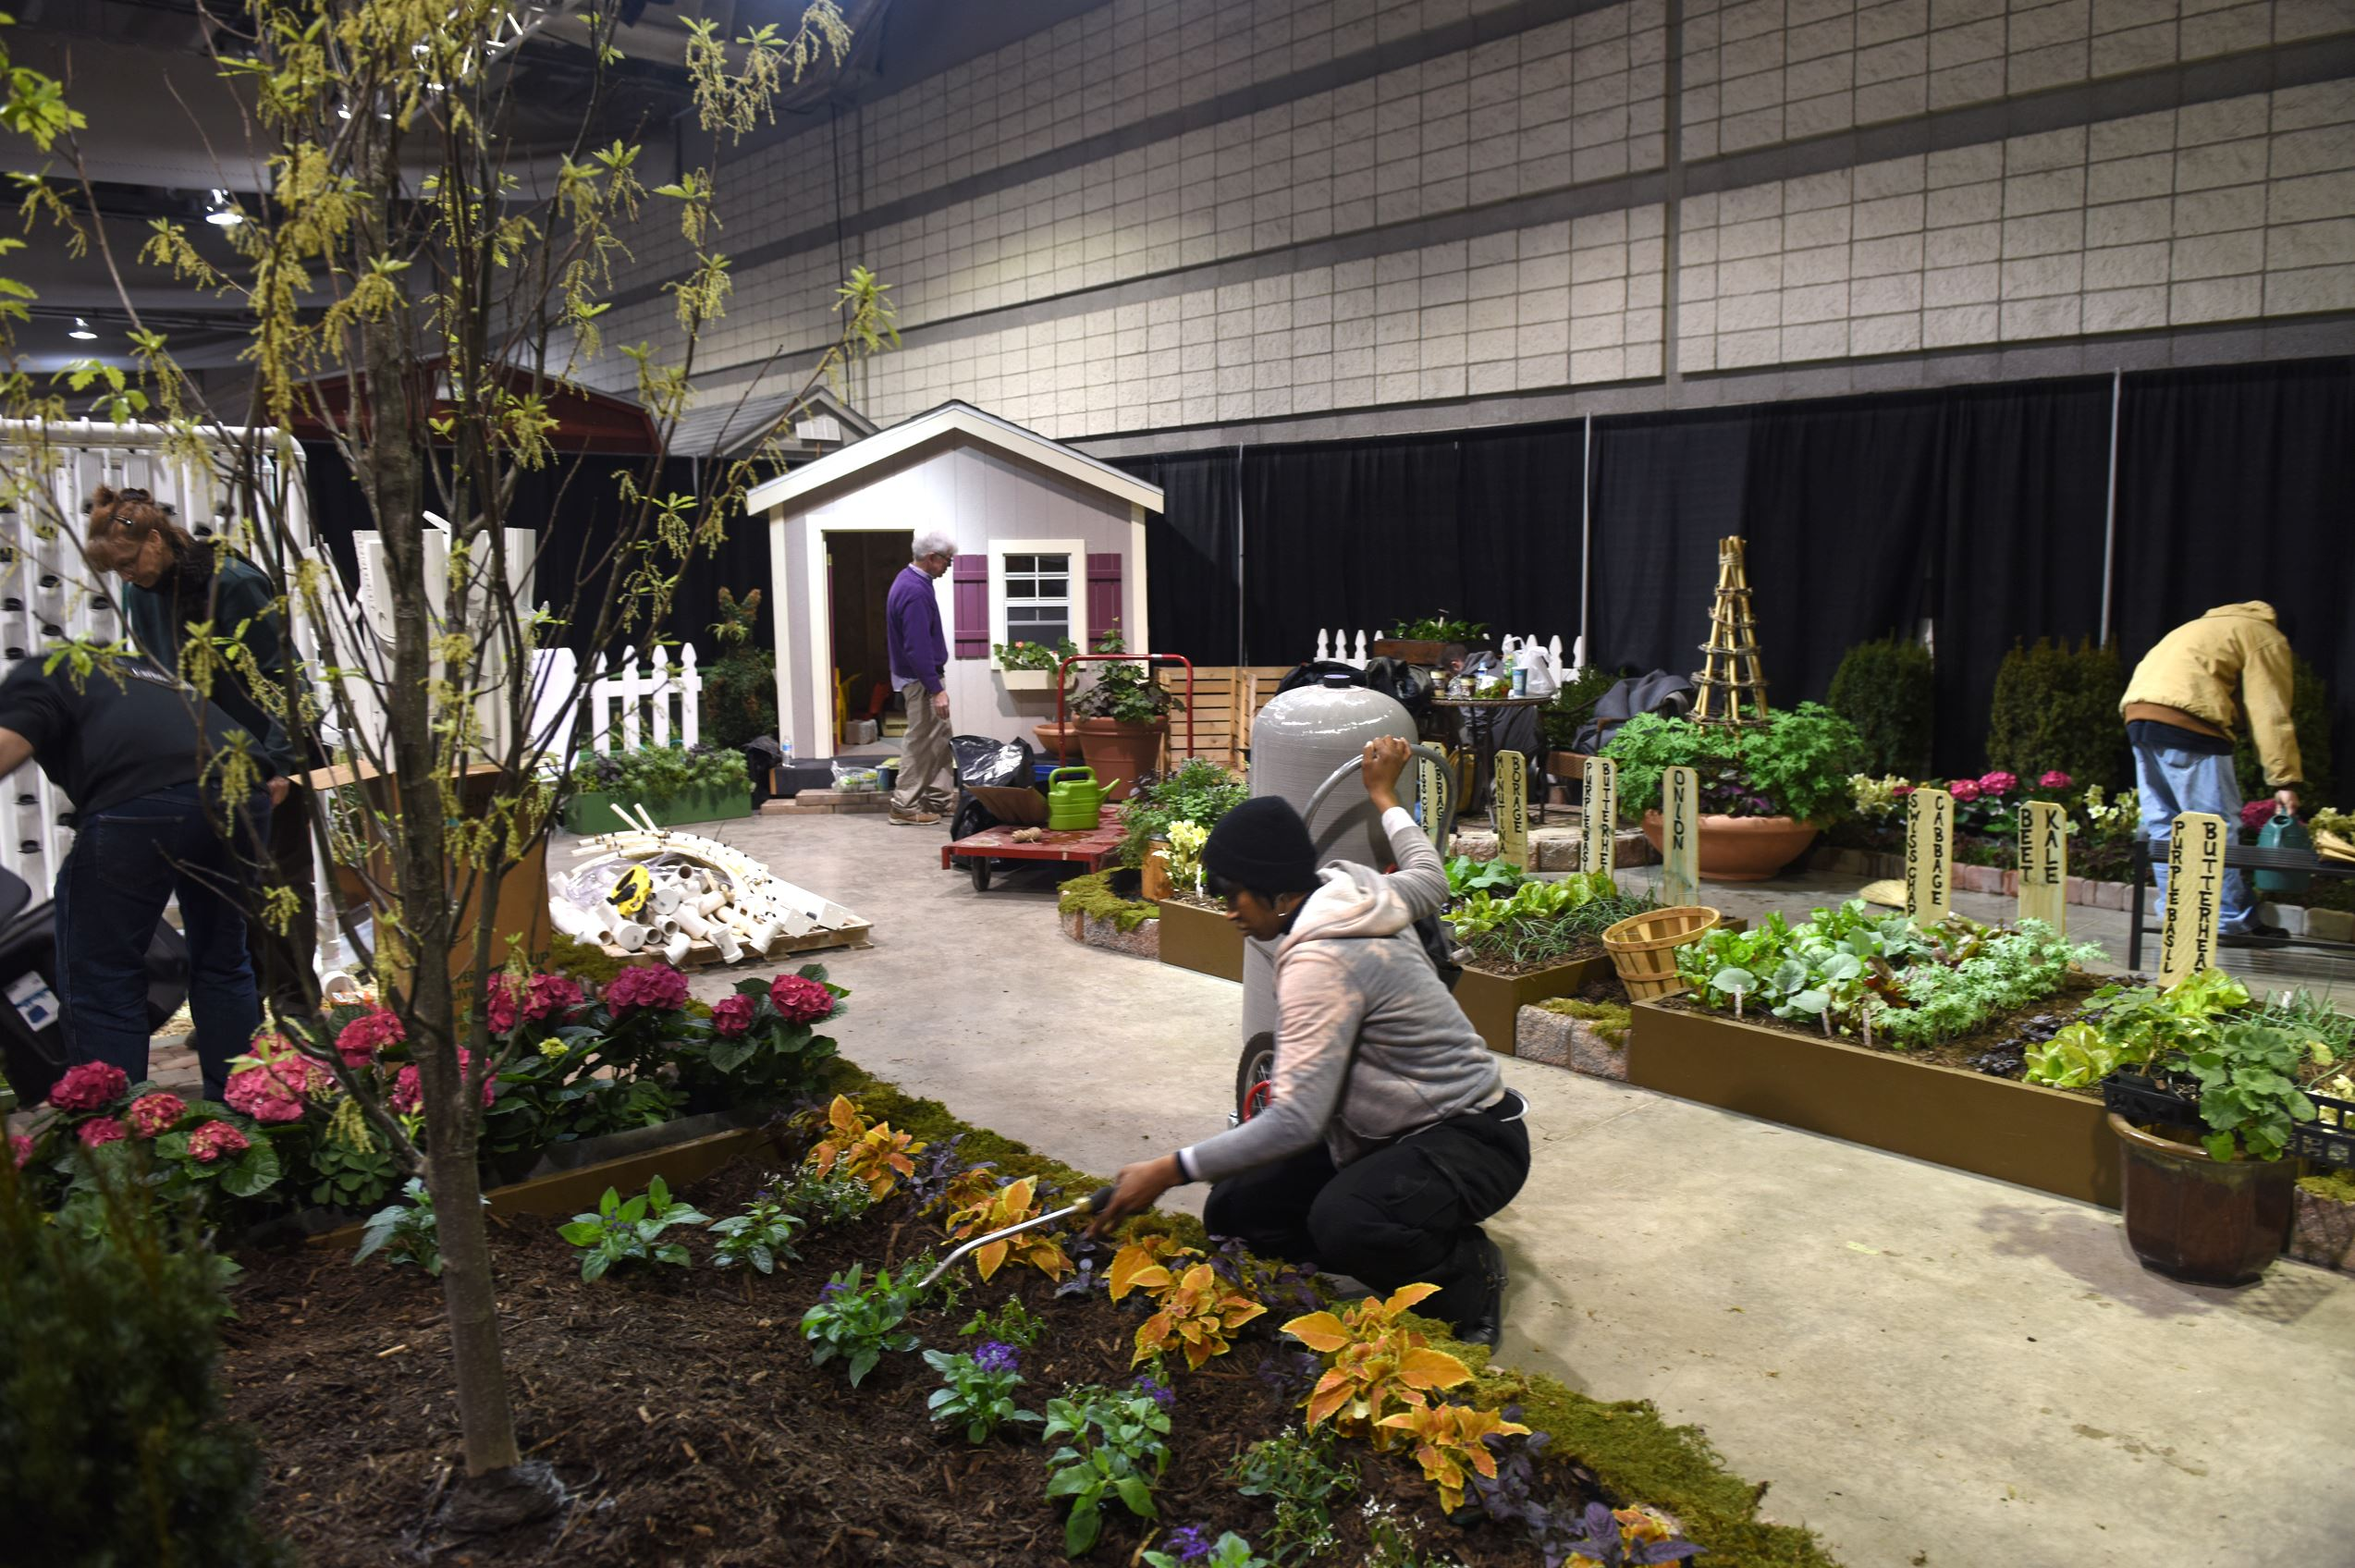 Home And Garden Show -  garden design with bidwell training center stages two gardens at home show with backyard kitchen ideas